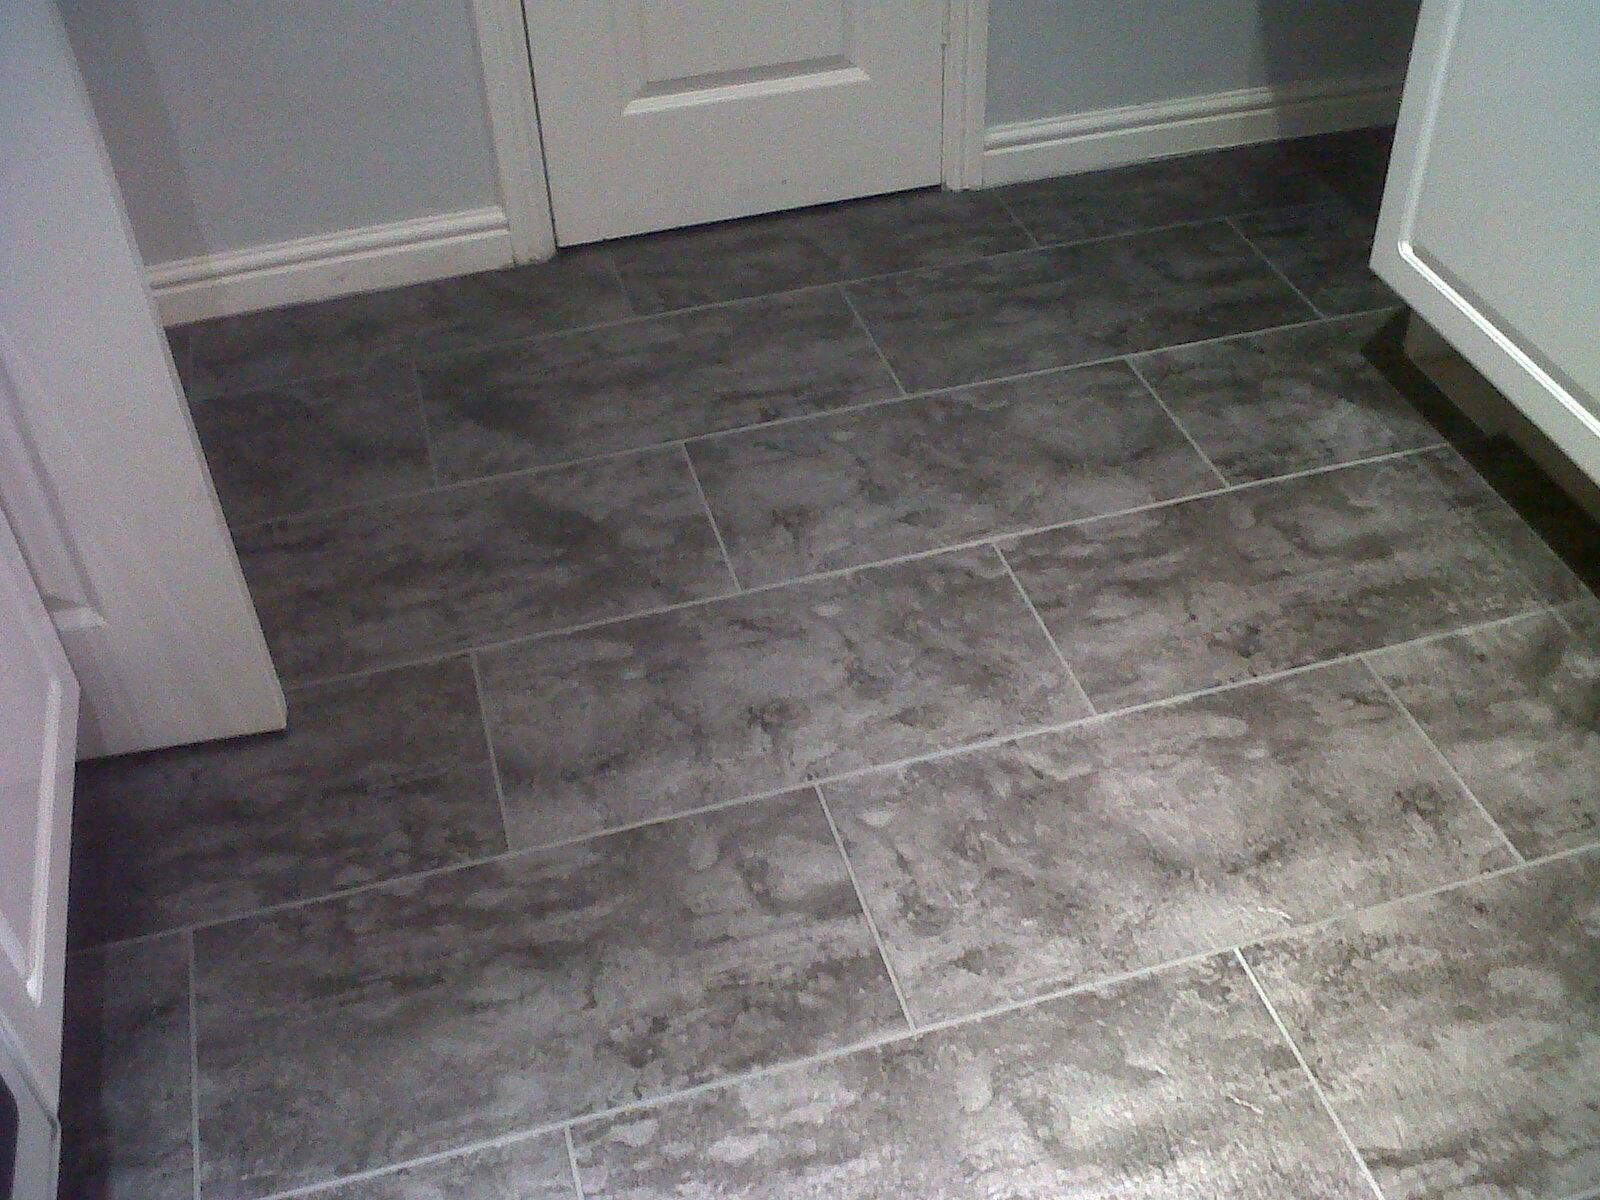 For a free estimate on any flooring you may be interested